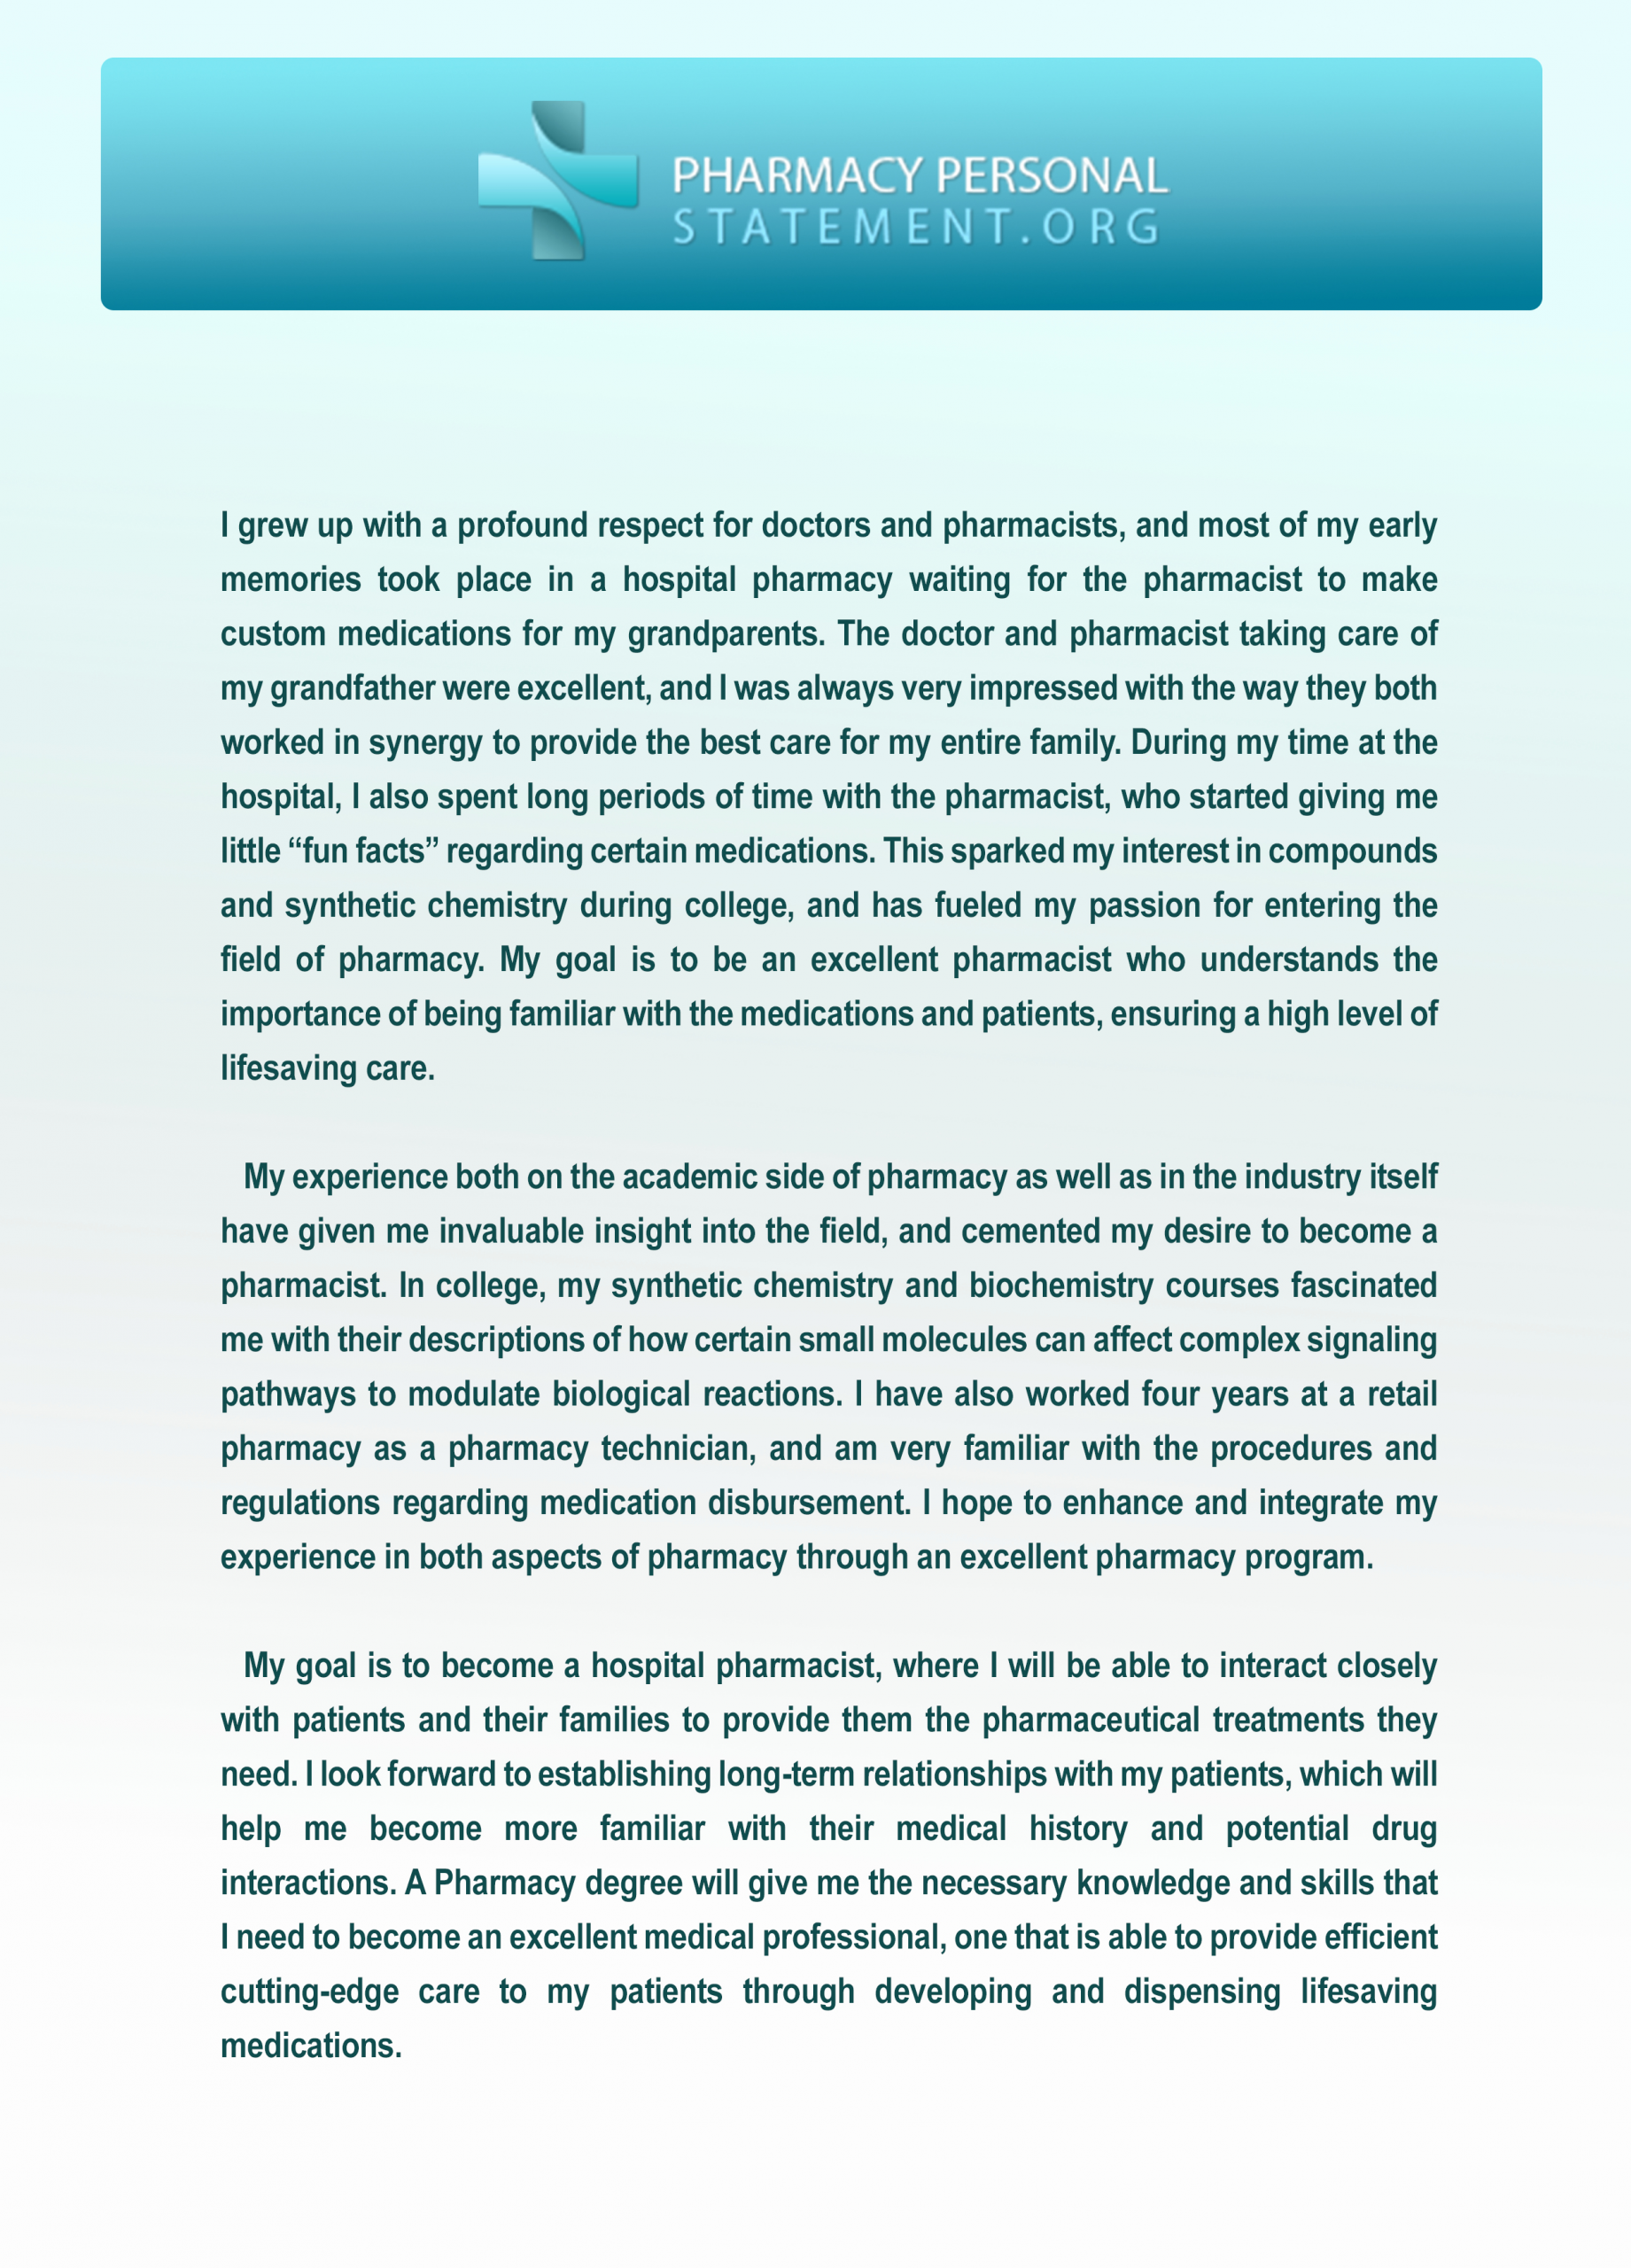 Personal History Statement Sample Fresh We Provide Pharmacy Personal Statement Examples